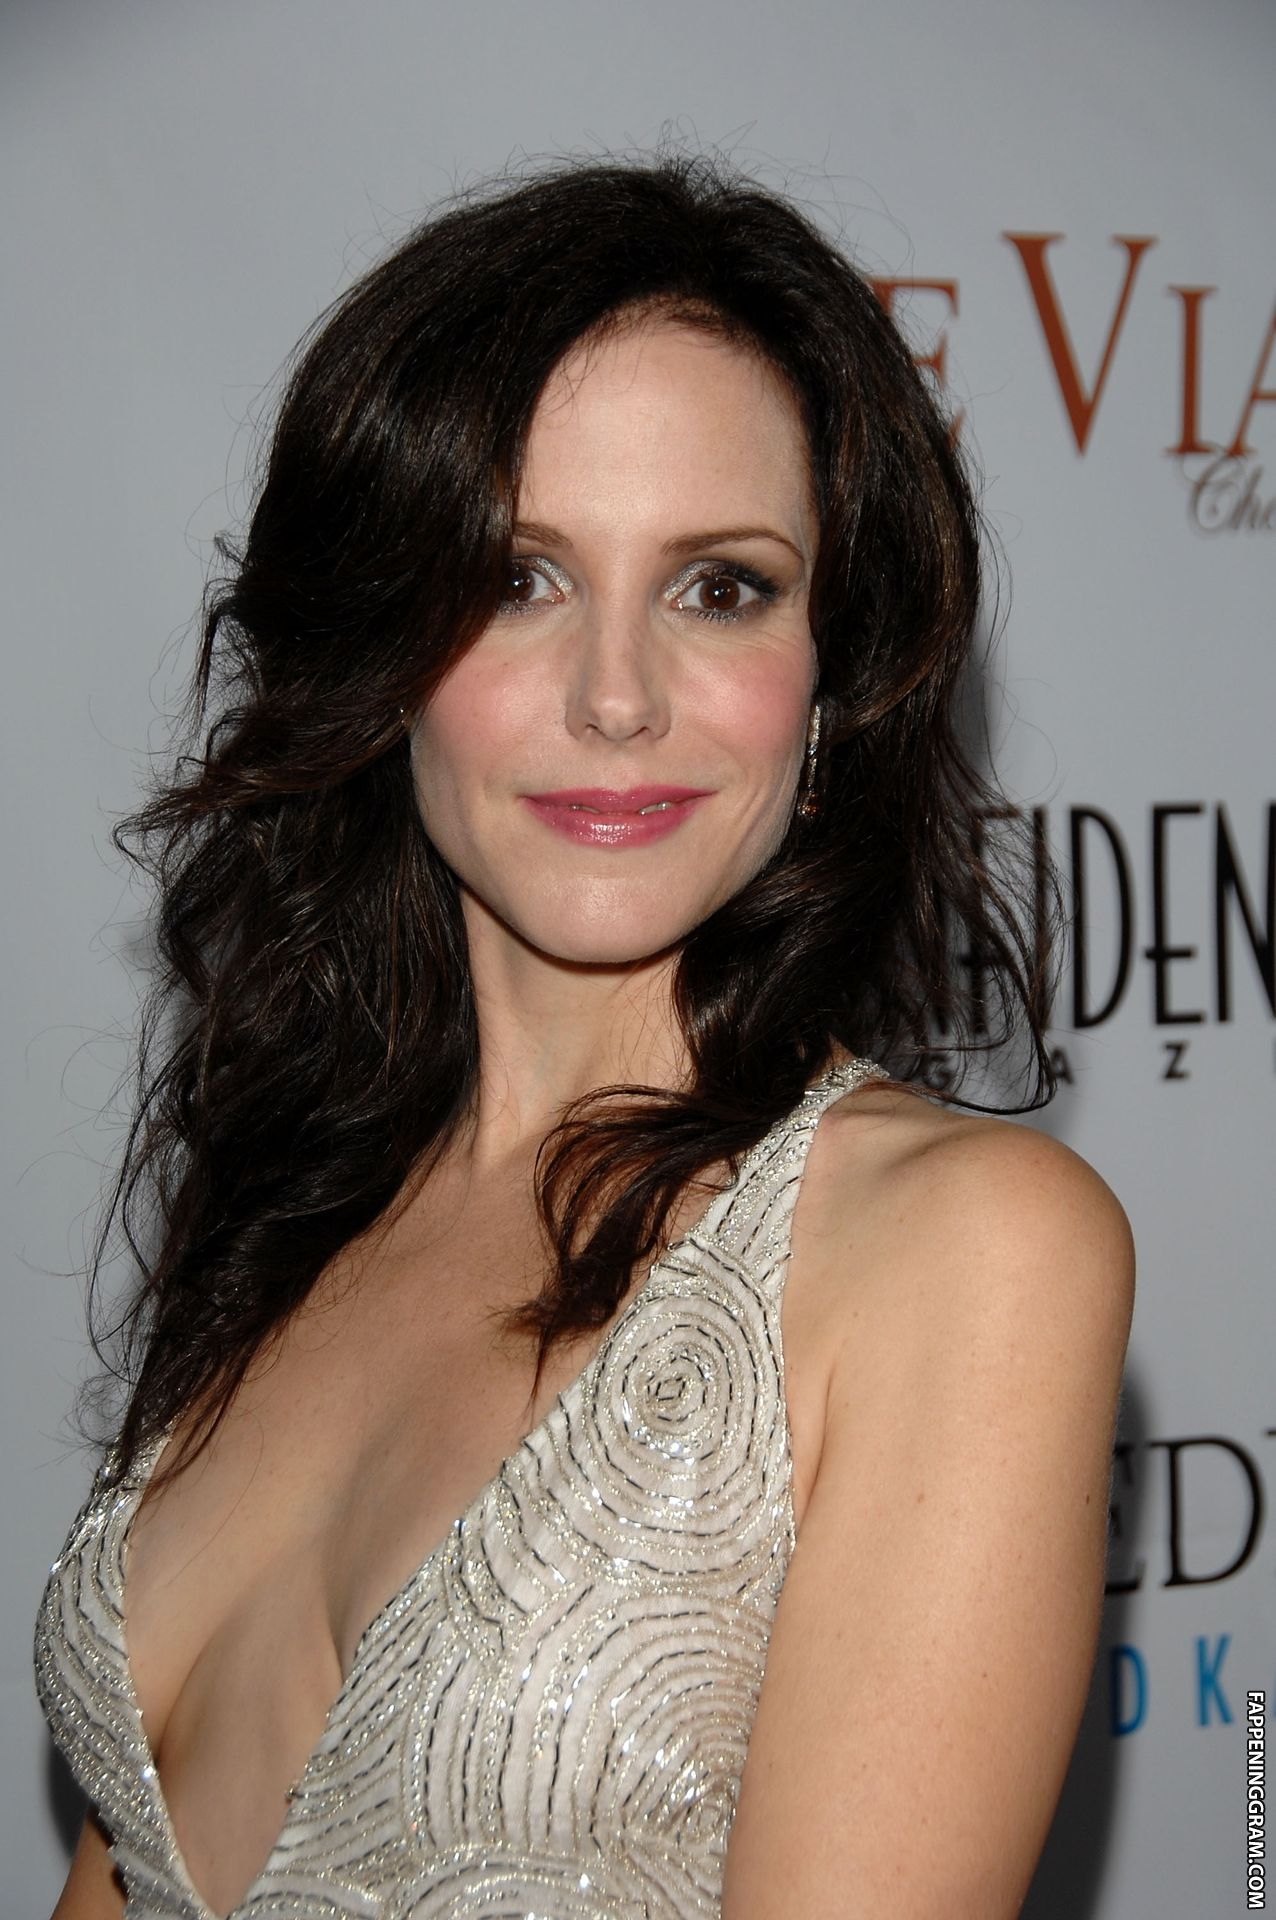 Mary-Louise Parker Nude The Fappening - FappeningGram